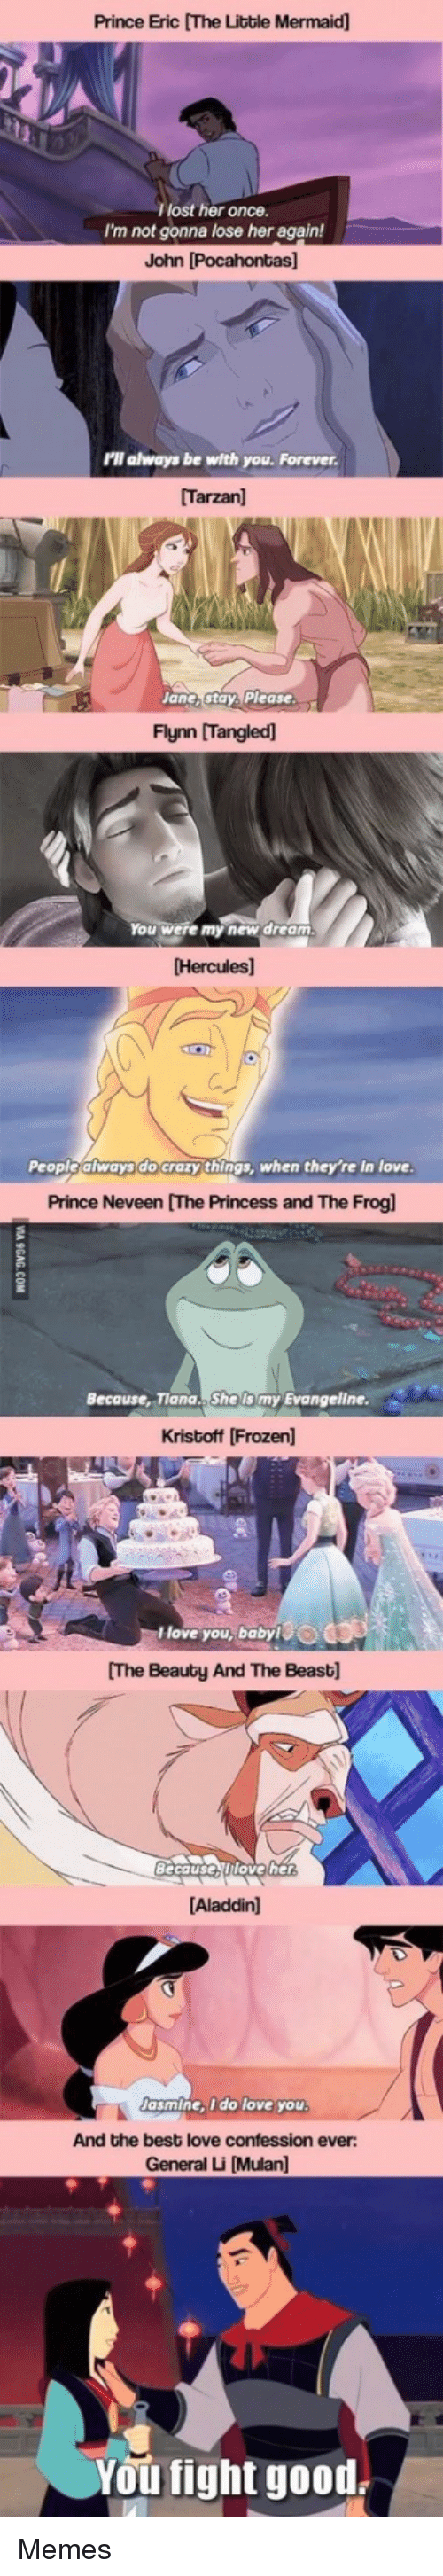 Mulan: Prince Eric [The Litble Mermaid]  lost her once.  I'm not gonna lose her again!  John [Pocahontas]  'll always be with you. Forever  [Tarzan]  Jane,stay, Please  Flynn [Tangled)  ou were my new dream  Hercules]  People always do crazy things, when they're in love  Prince Neveen [The Princess and The Frogl  Because, Tiana.. She lis my Evangeline  Kristoff [Frozen  love you, babyO  The Beauty And The Beast]  Becauserttoveher  Aladdin]  asmine, i do love you  And the best love confession ever:  General Li [Mulan]  You fight good Memes